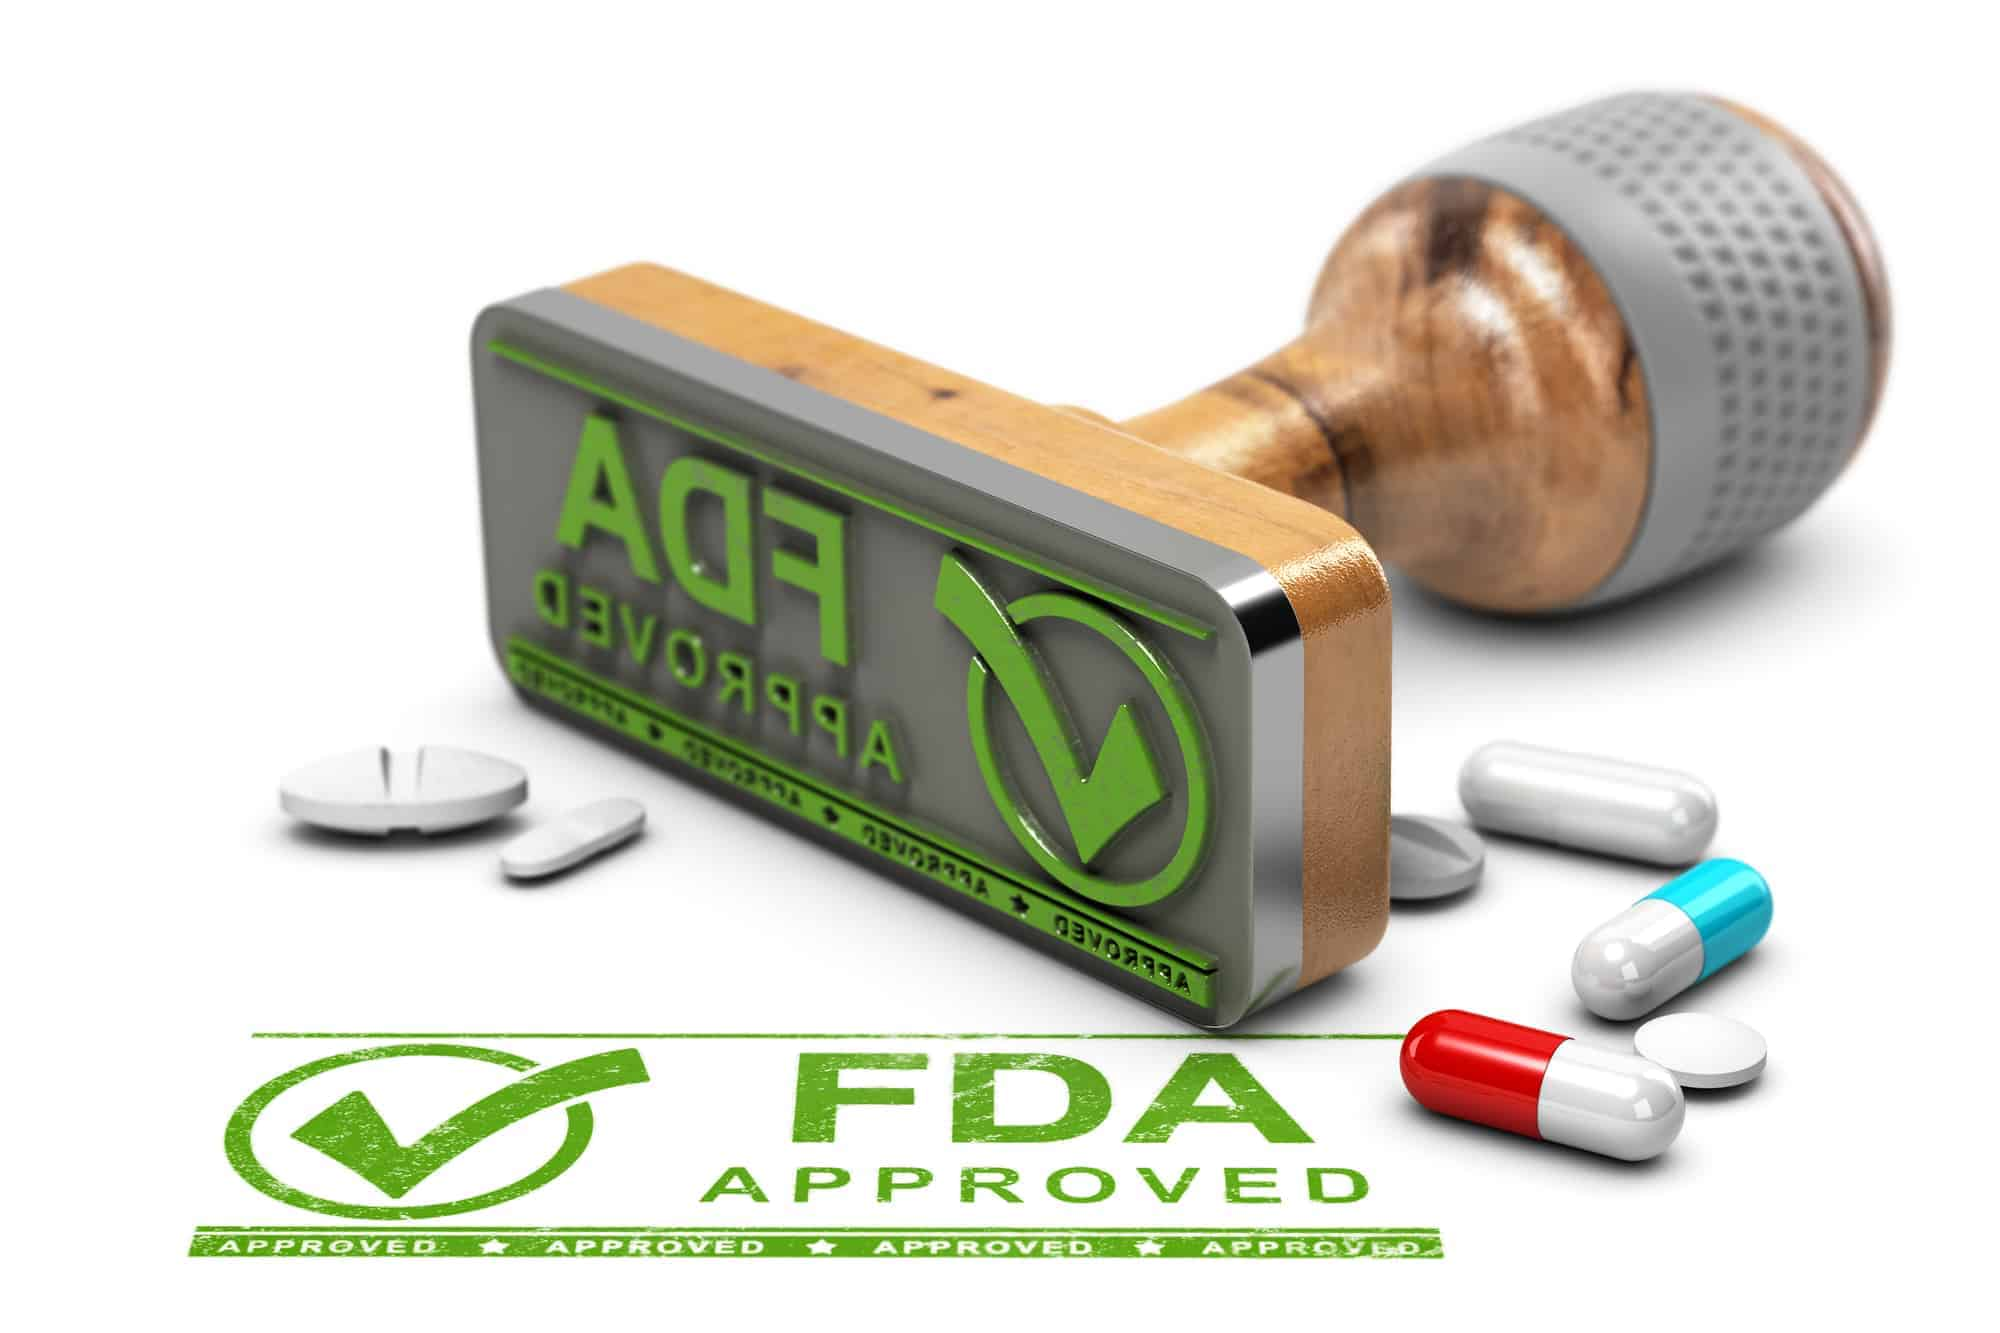 Shortages of prescription drugs are also an ongoing concern worldwide. There are various initiatives that have been crafted to combat the problem. For example, the FDA gives special consideration and priority to abbreviated new drug application (ANDA) prior approval supplements (PAS) which address drug shortages or disasters.